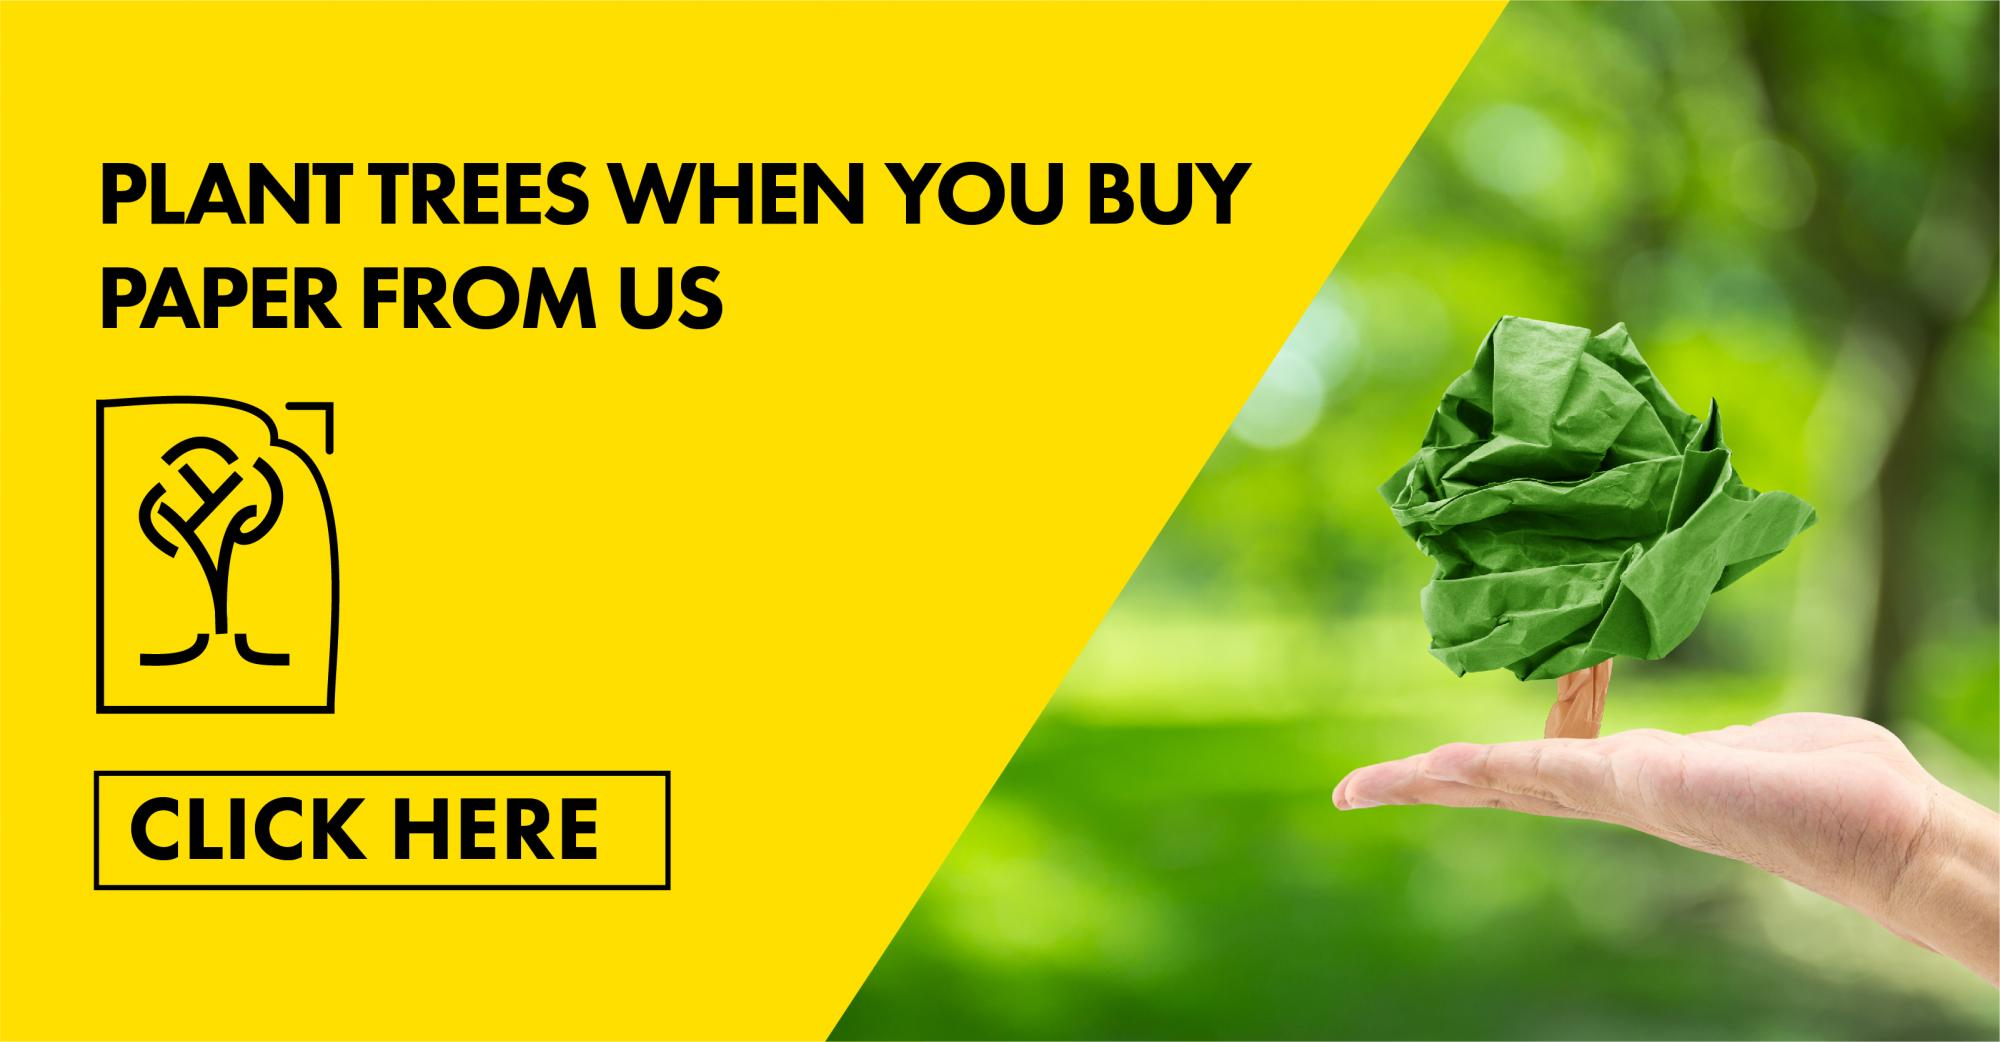 Plant Trees when you buy paper from us!